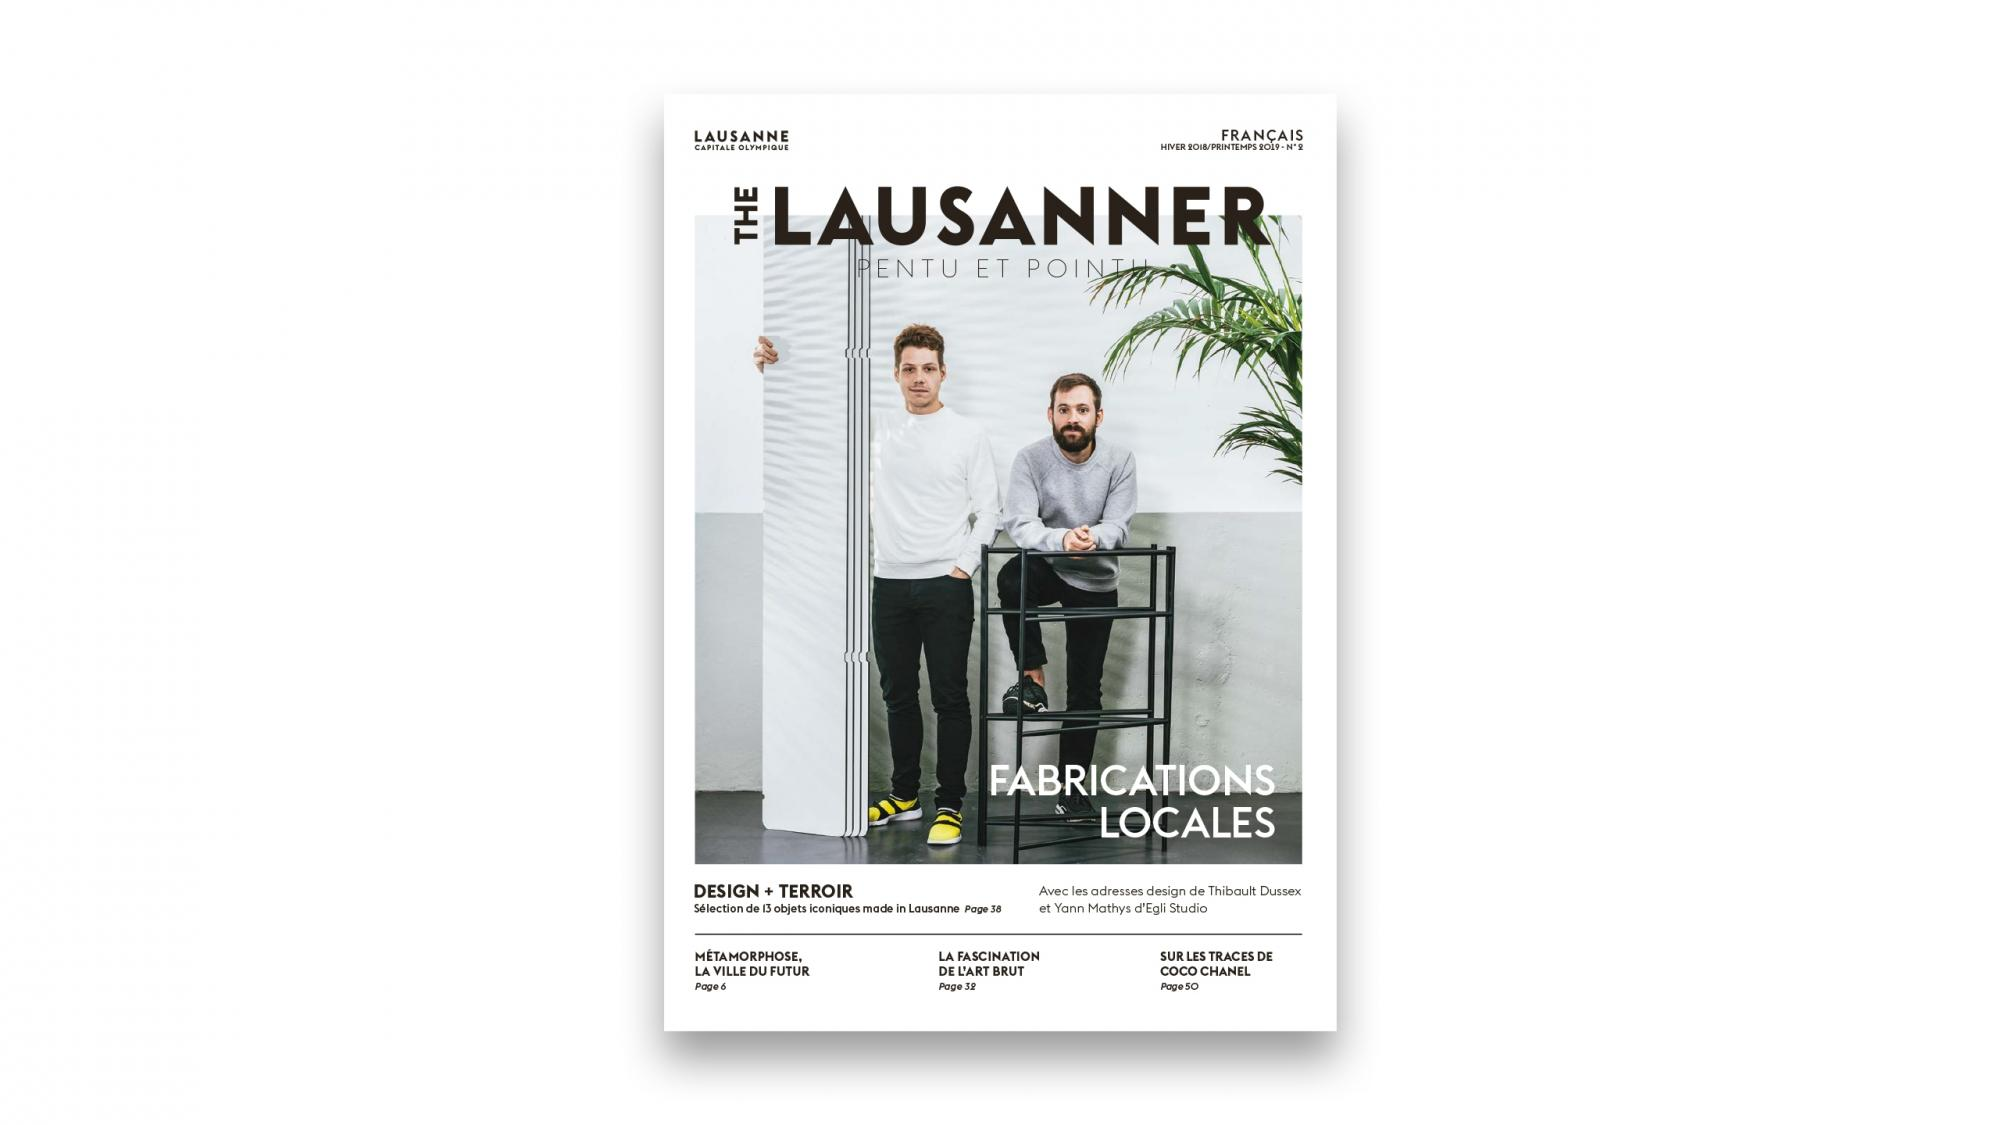 The Lausanner: local productions